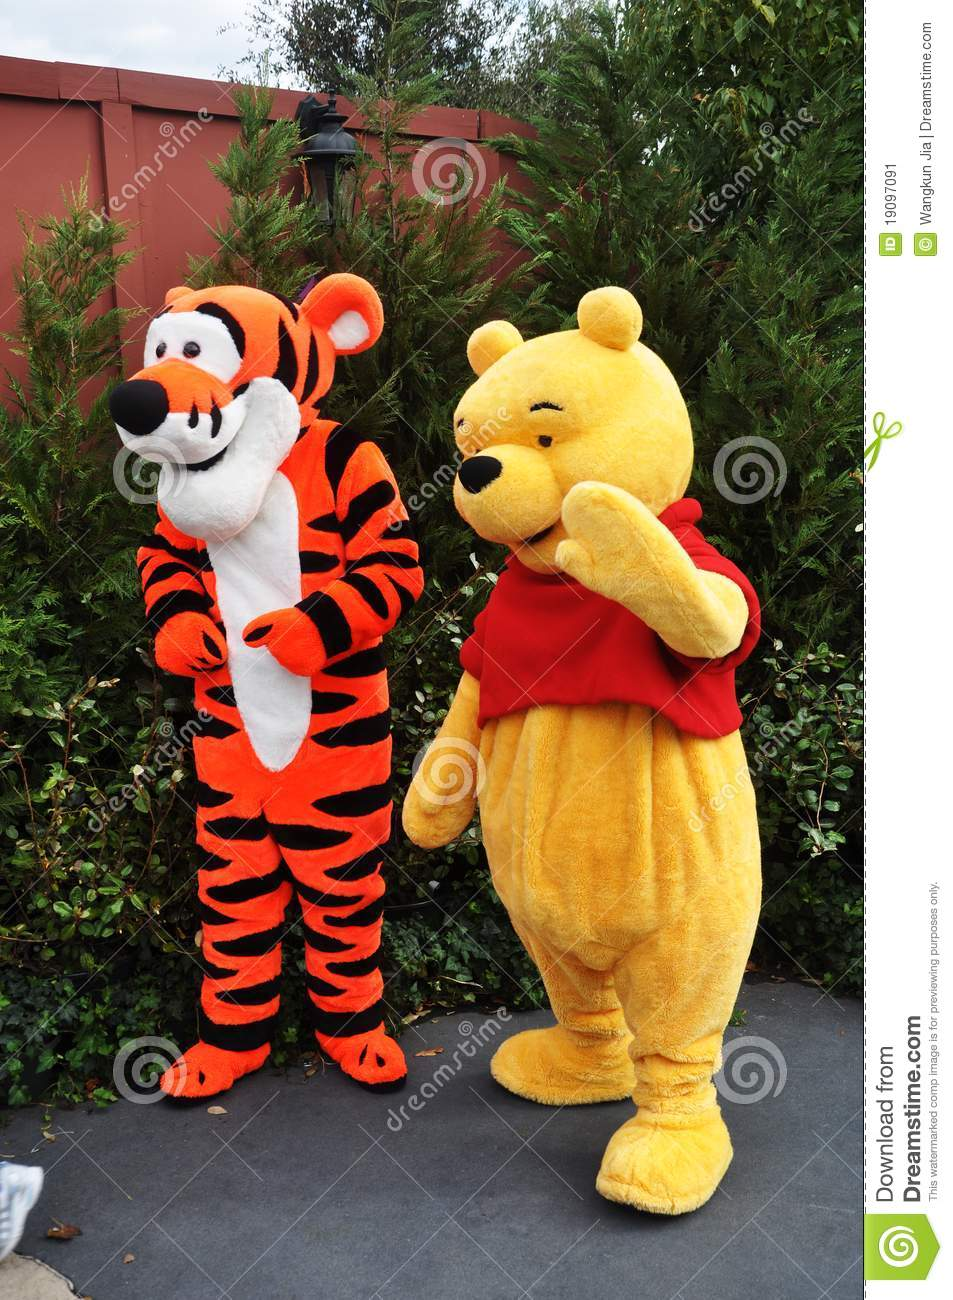 3d9c47149e34 Winnie-the-Pooh And Tigger In Disney World Editorial Photo - Image ...